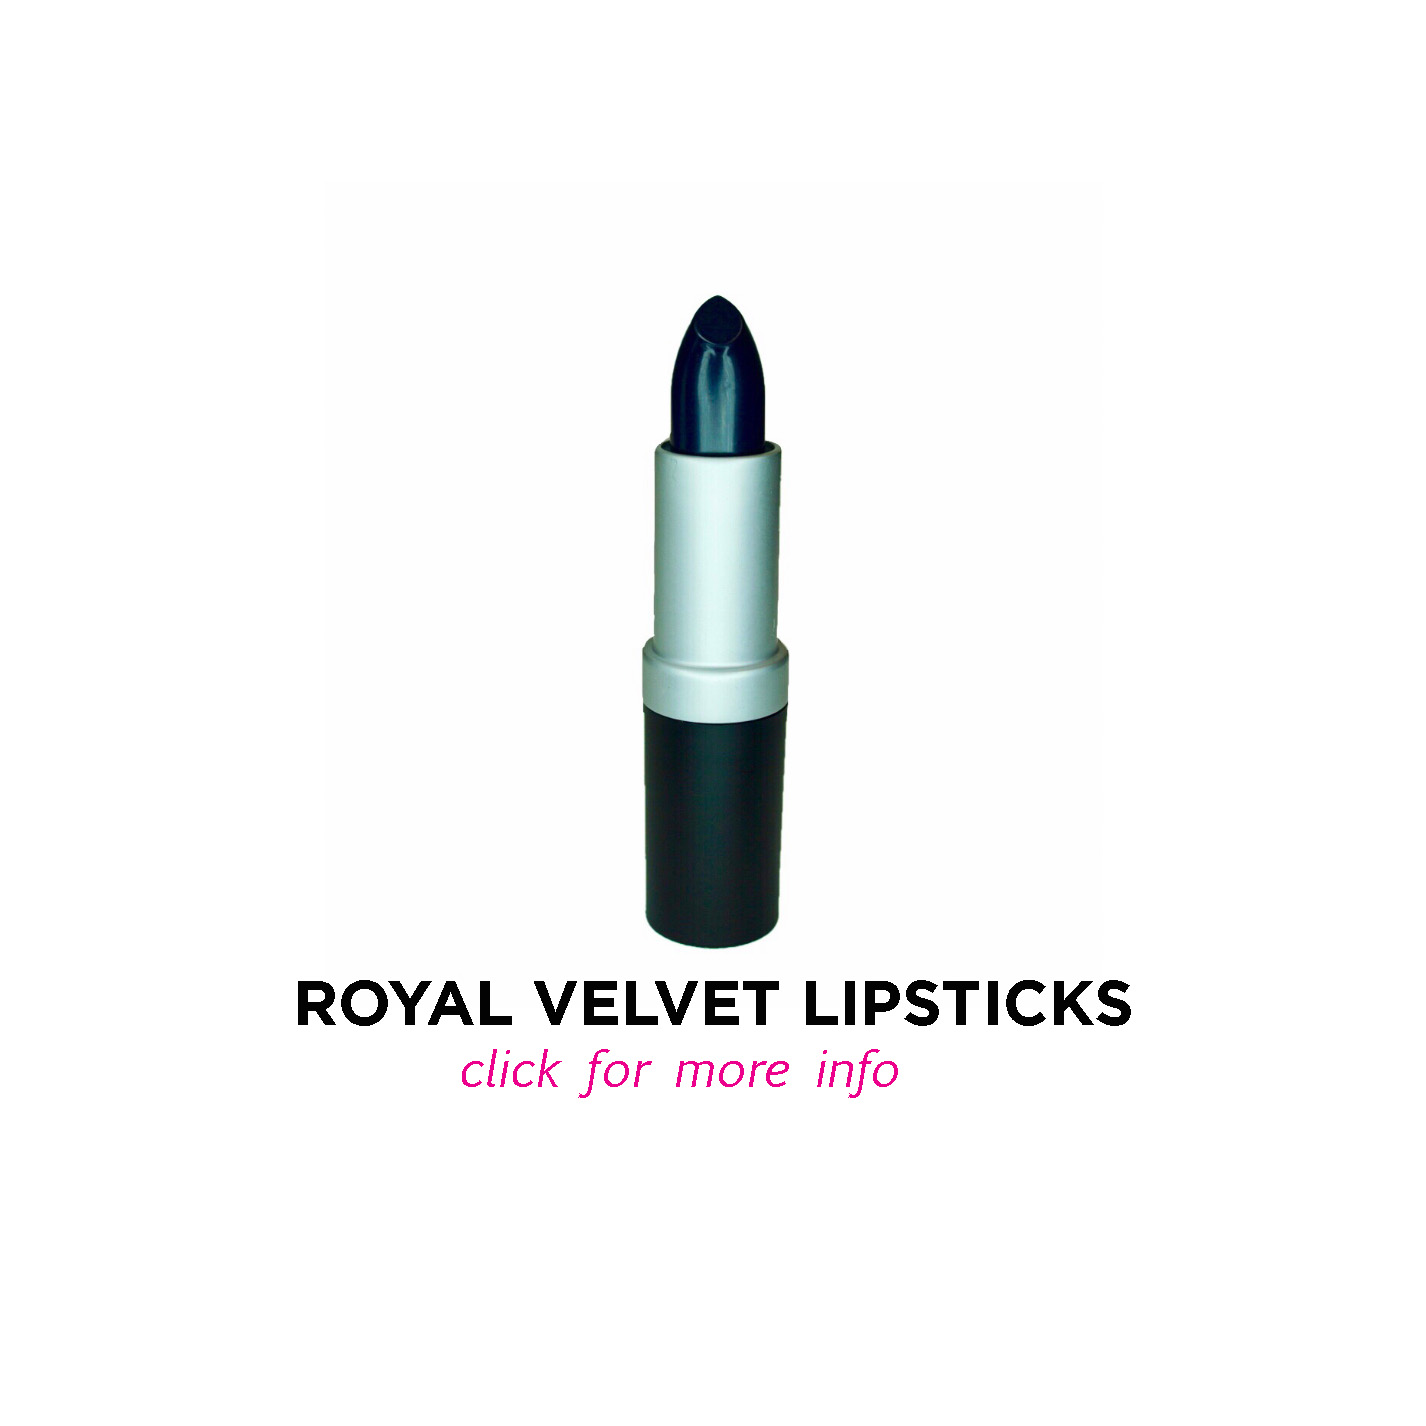 ROYAL VELVET LIPSTICKS THUMBNAIL.jpg